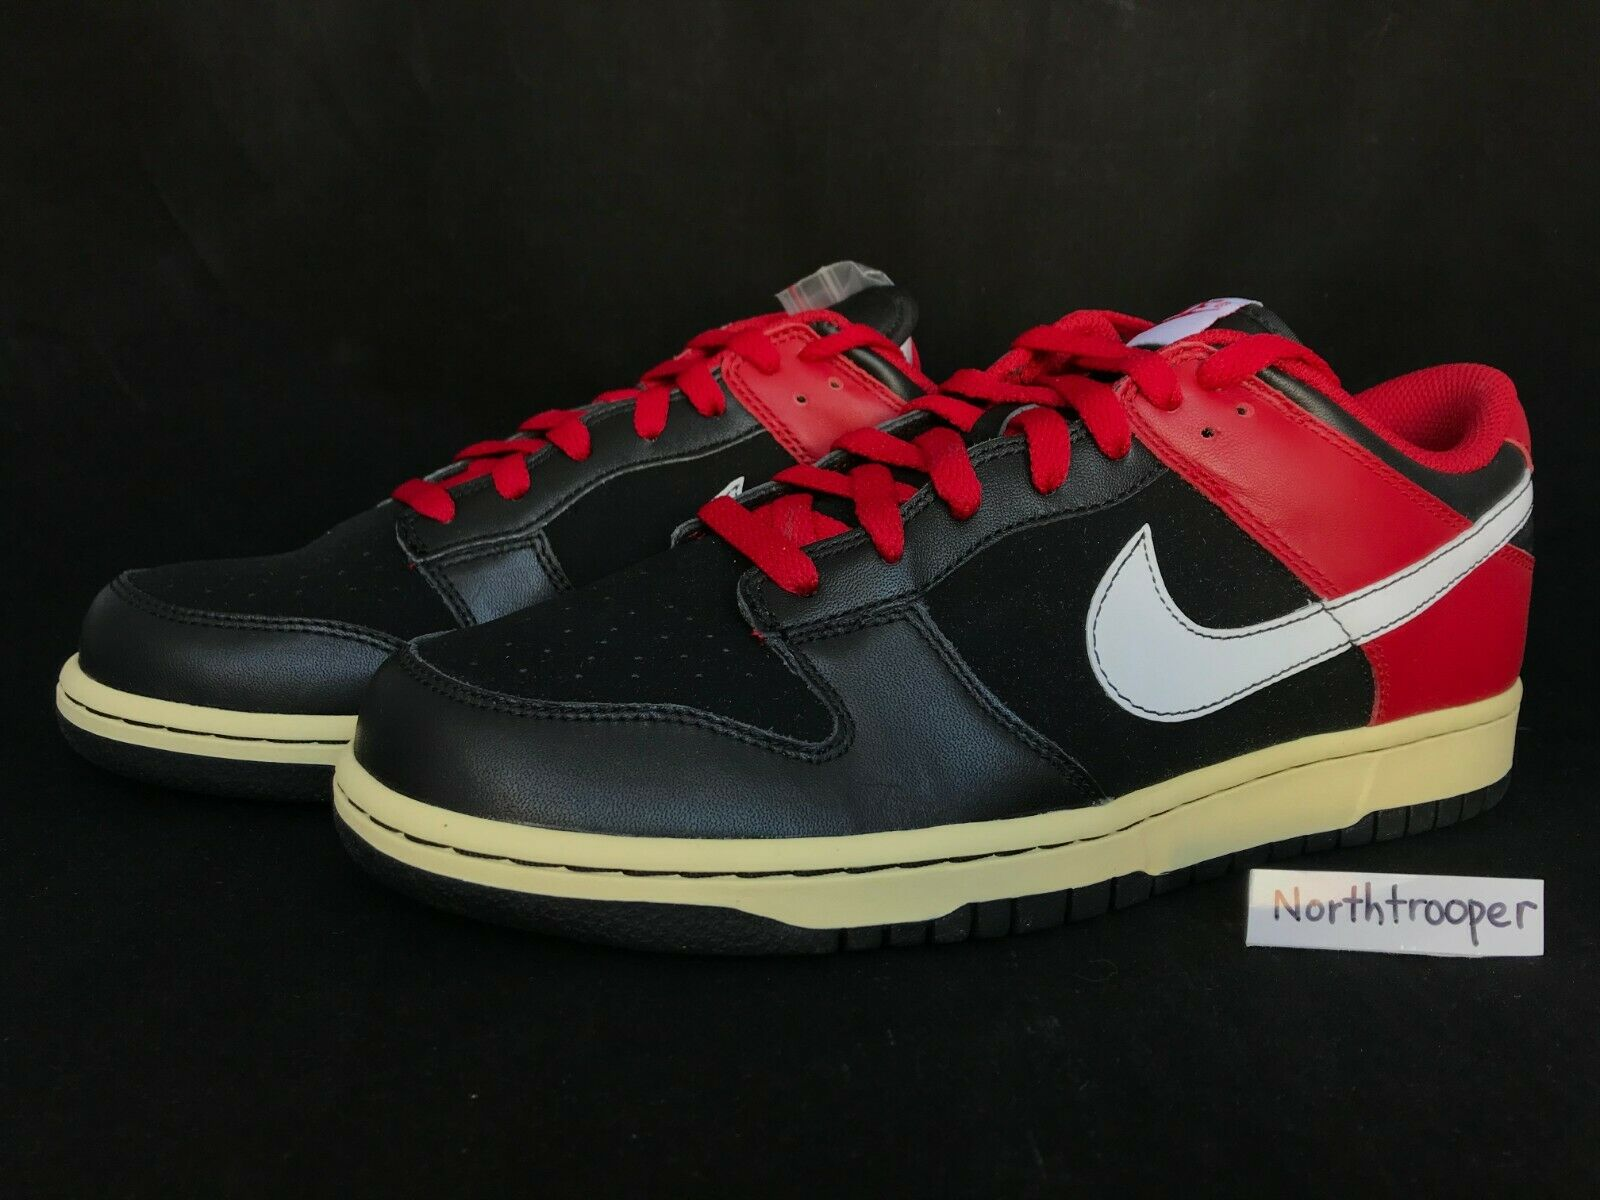 Nike Dunk Low CL Jordan BRED Black White-Varsity Red 304714-016 Sz10 NIB